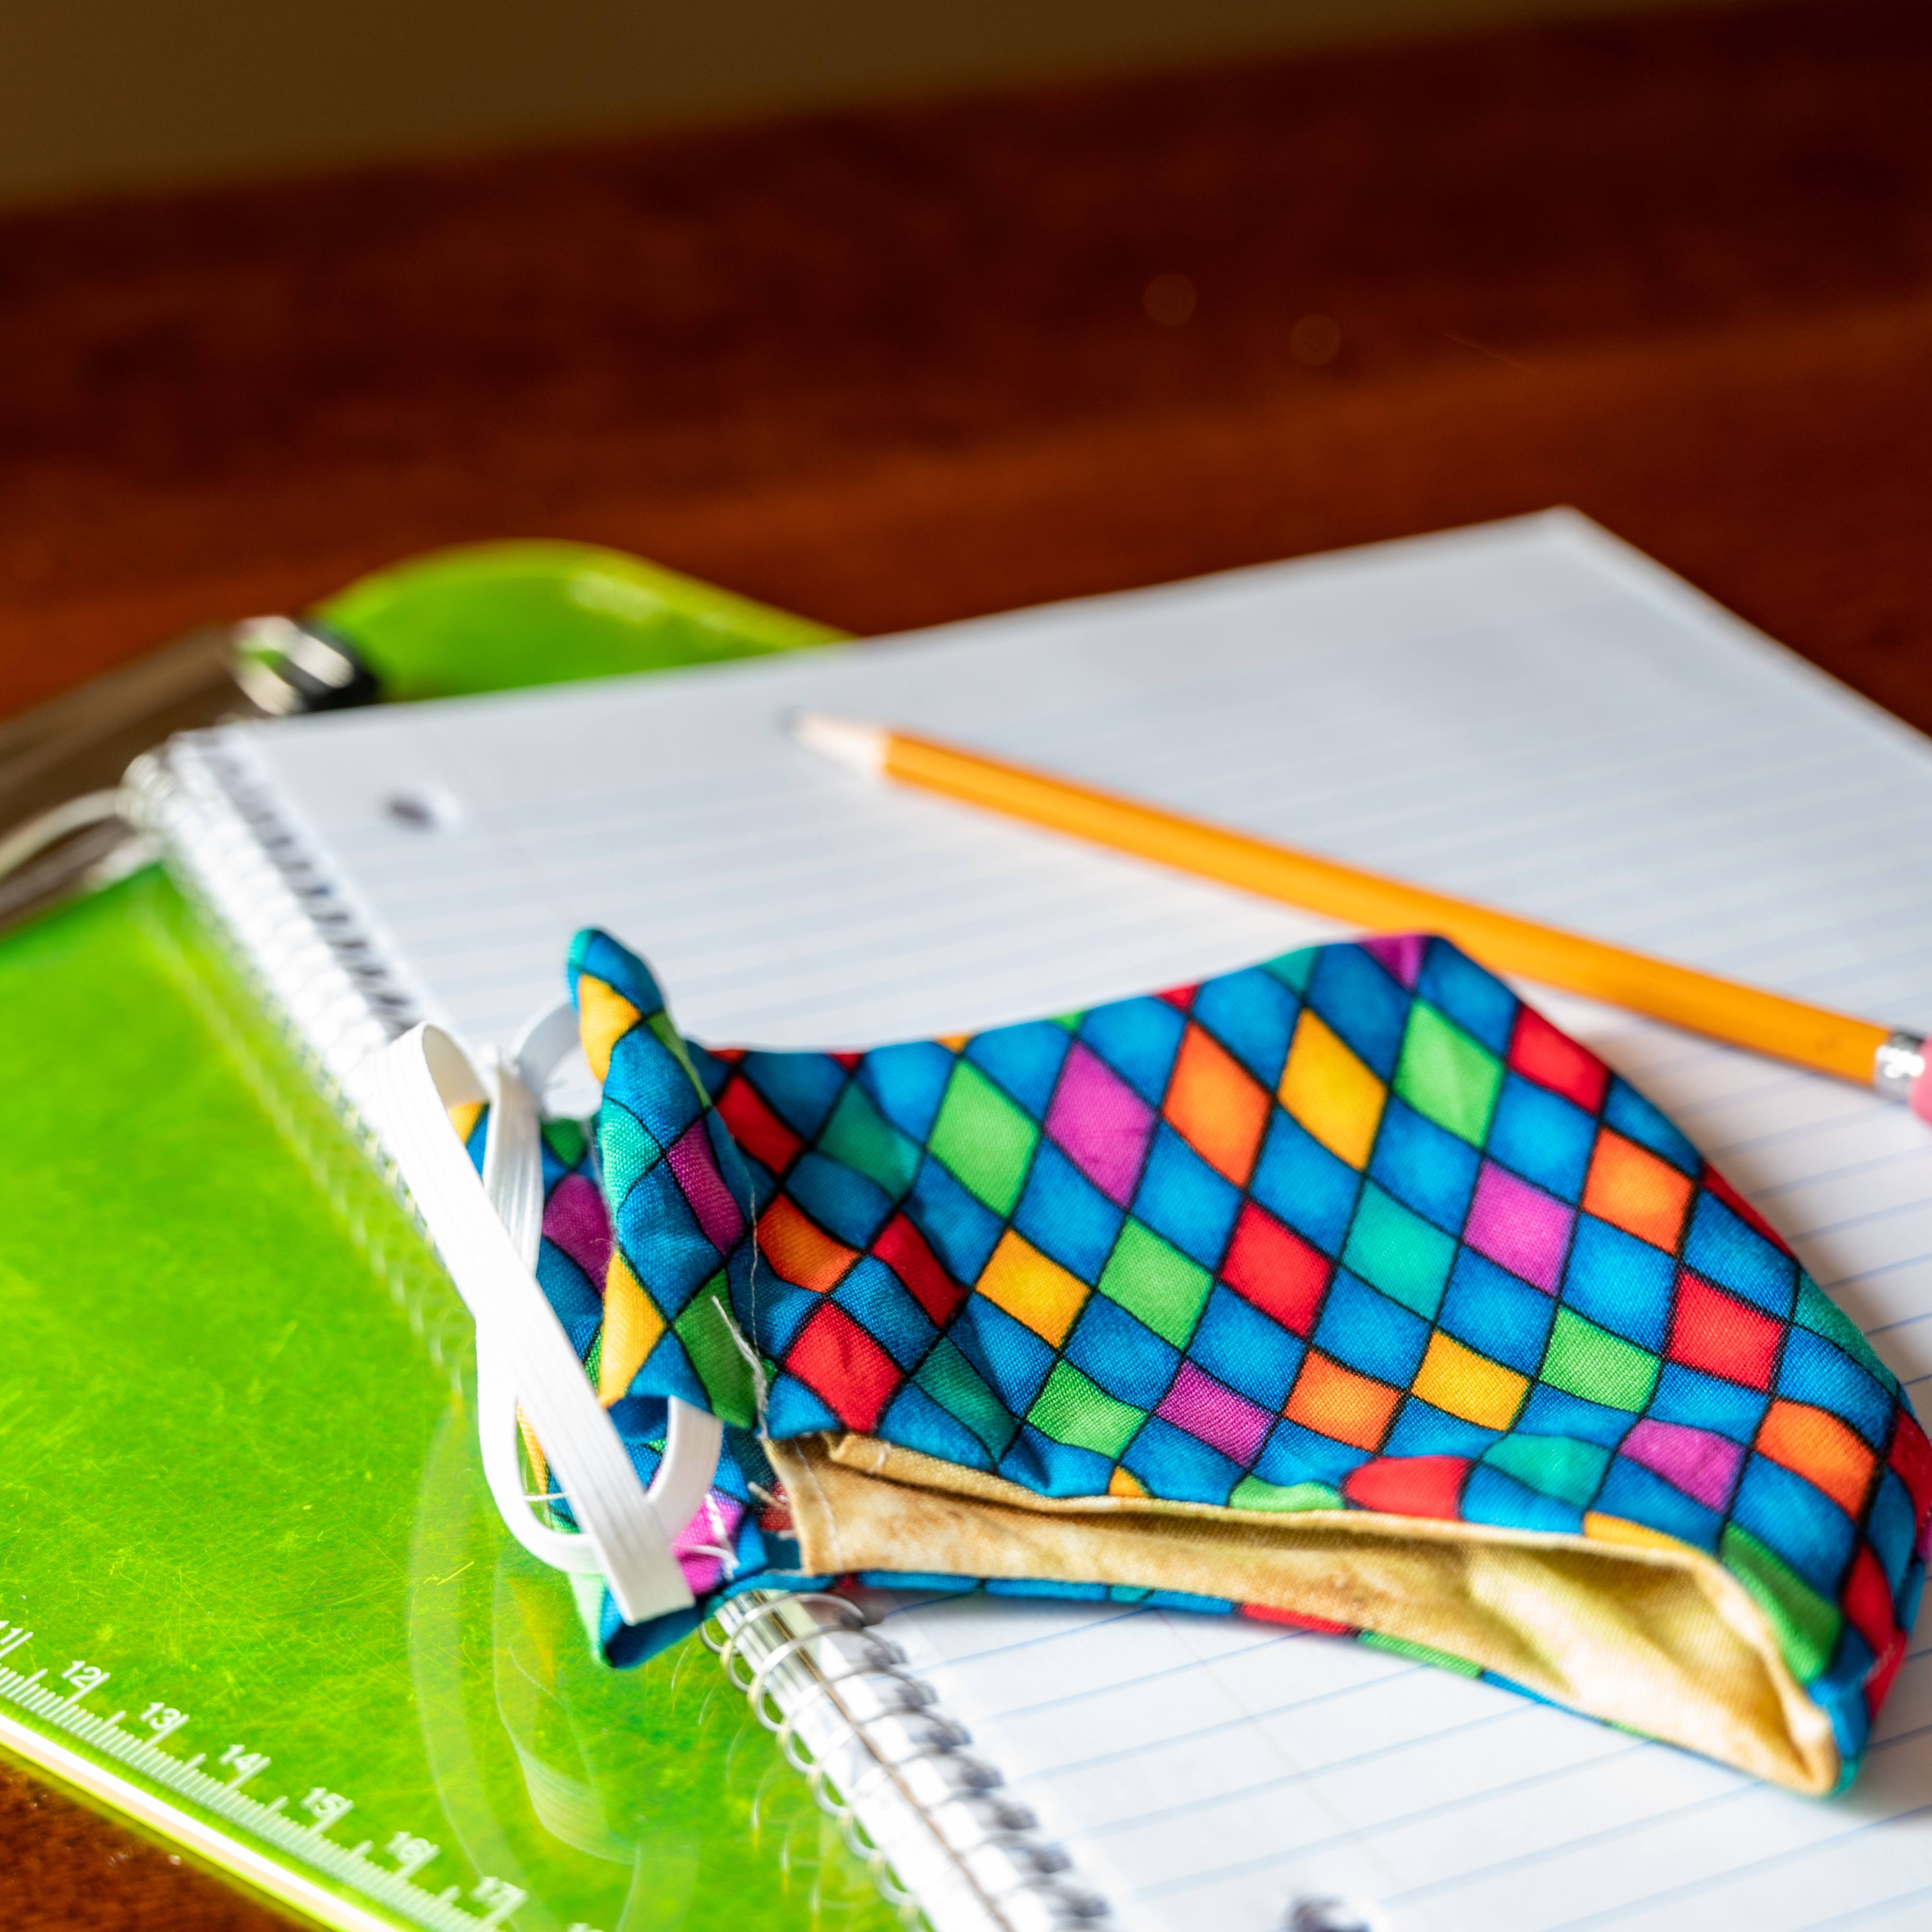 a clipboard, school notebook, pencil and colorful face mask on a wooden table